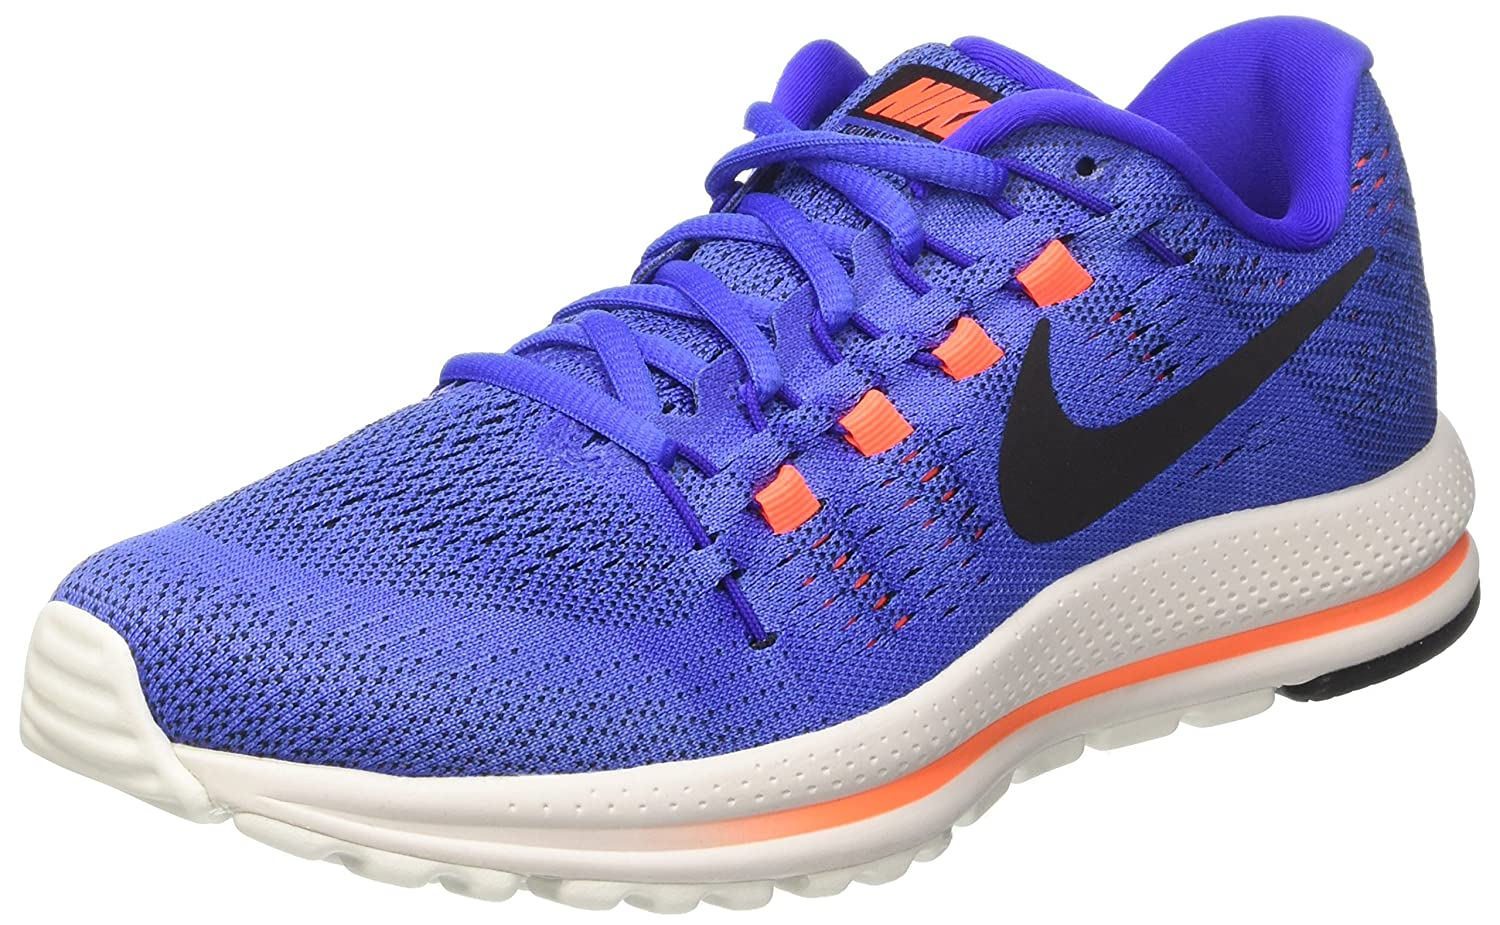 NIKE Men's Air Zoom Vomero 12 Running Shoe B01MT18V51 9.5 D(M) US|Blue